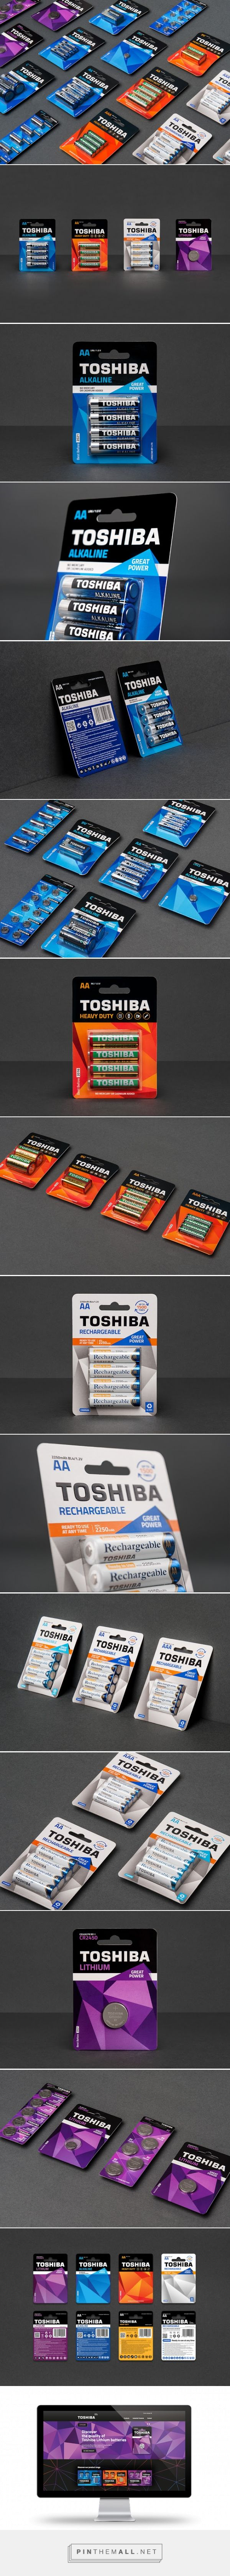 #Toshiba #Batteries For #European Market designed by NECON​ - http://www.packagingoftheworld.com/2015/06/toshiba-batteries-for-european-market.html